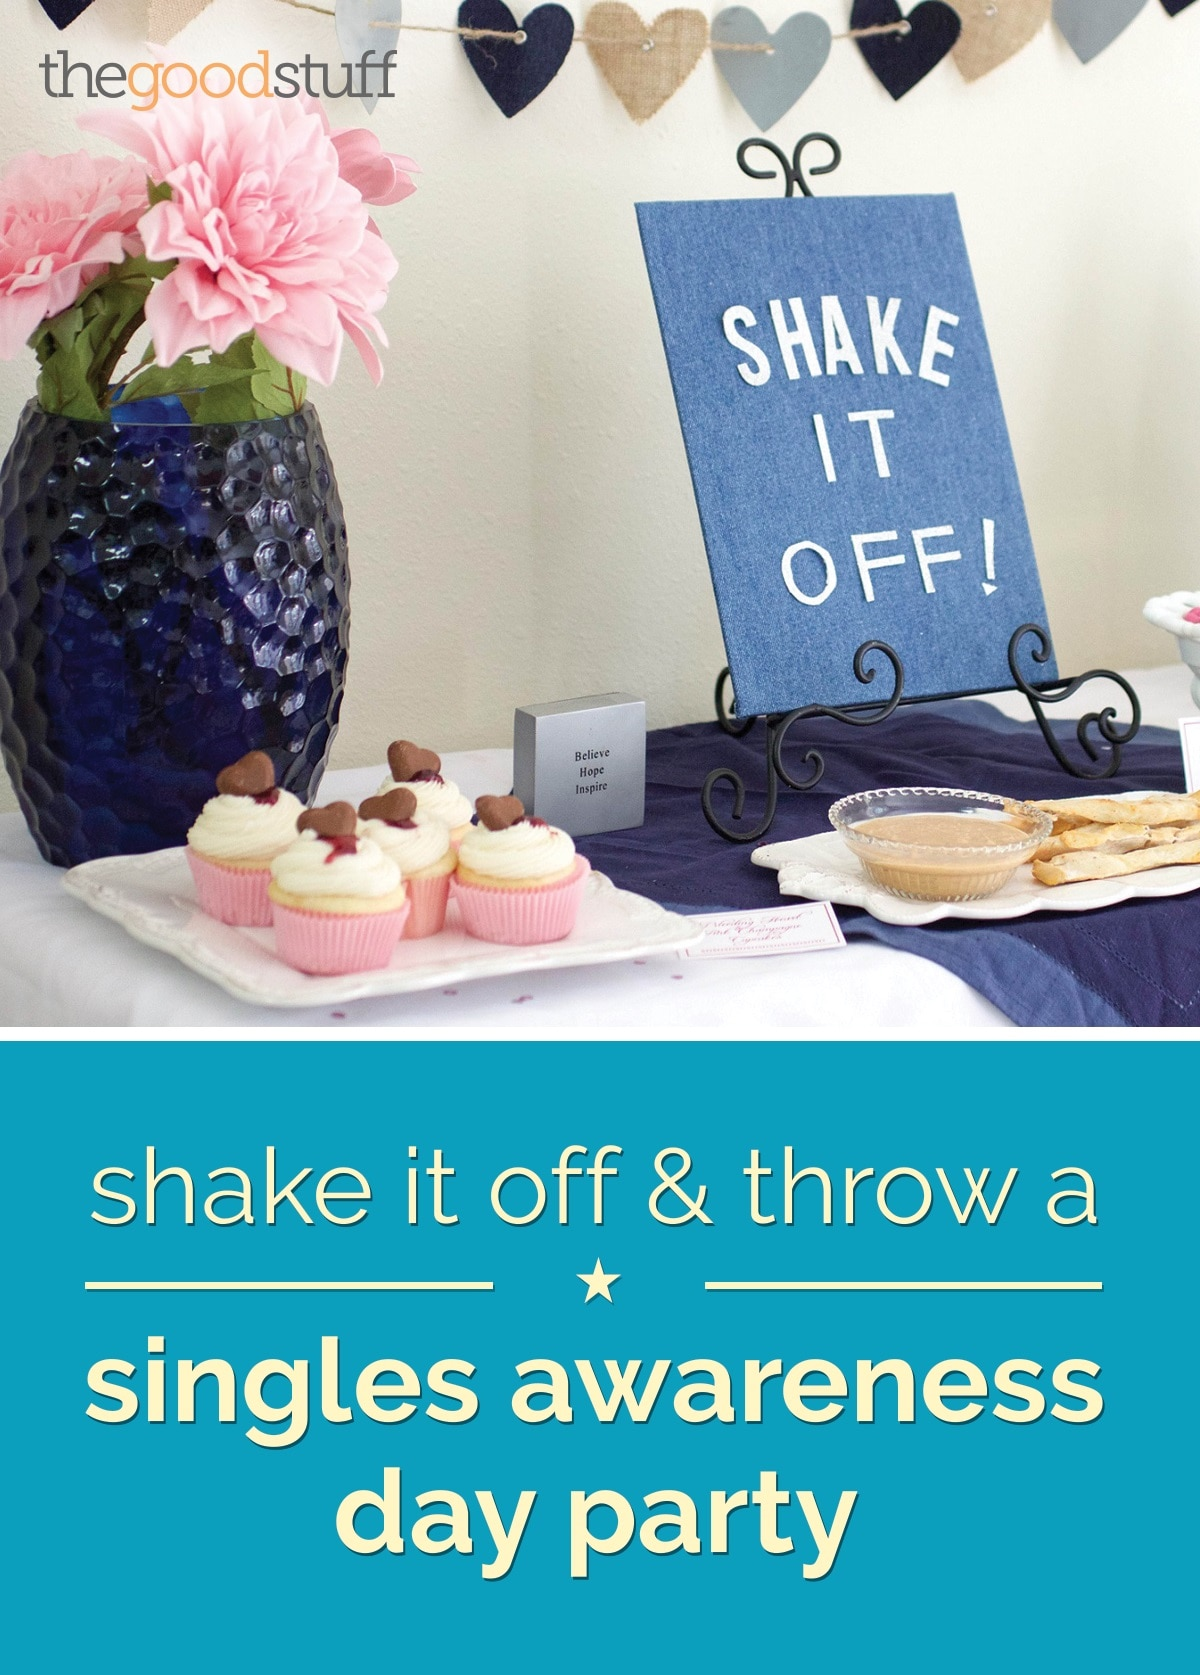 diy-food-singles-awareness-day-party